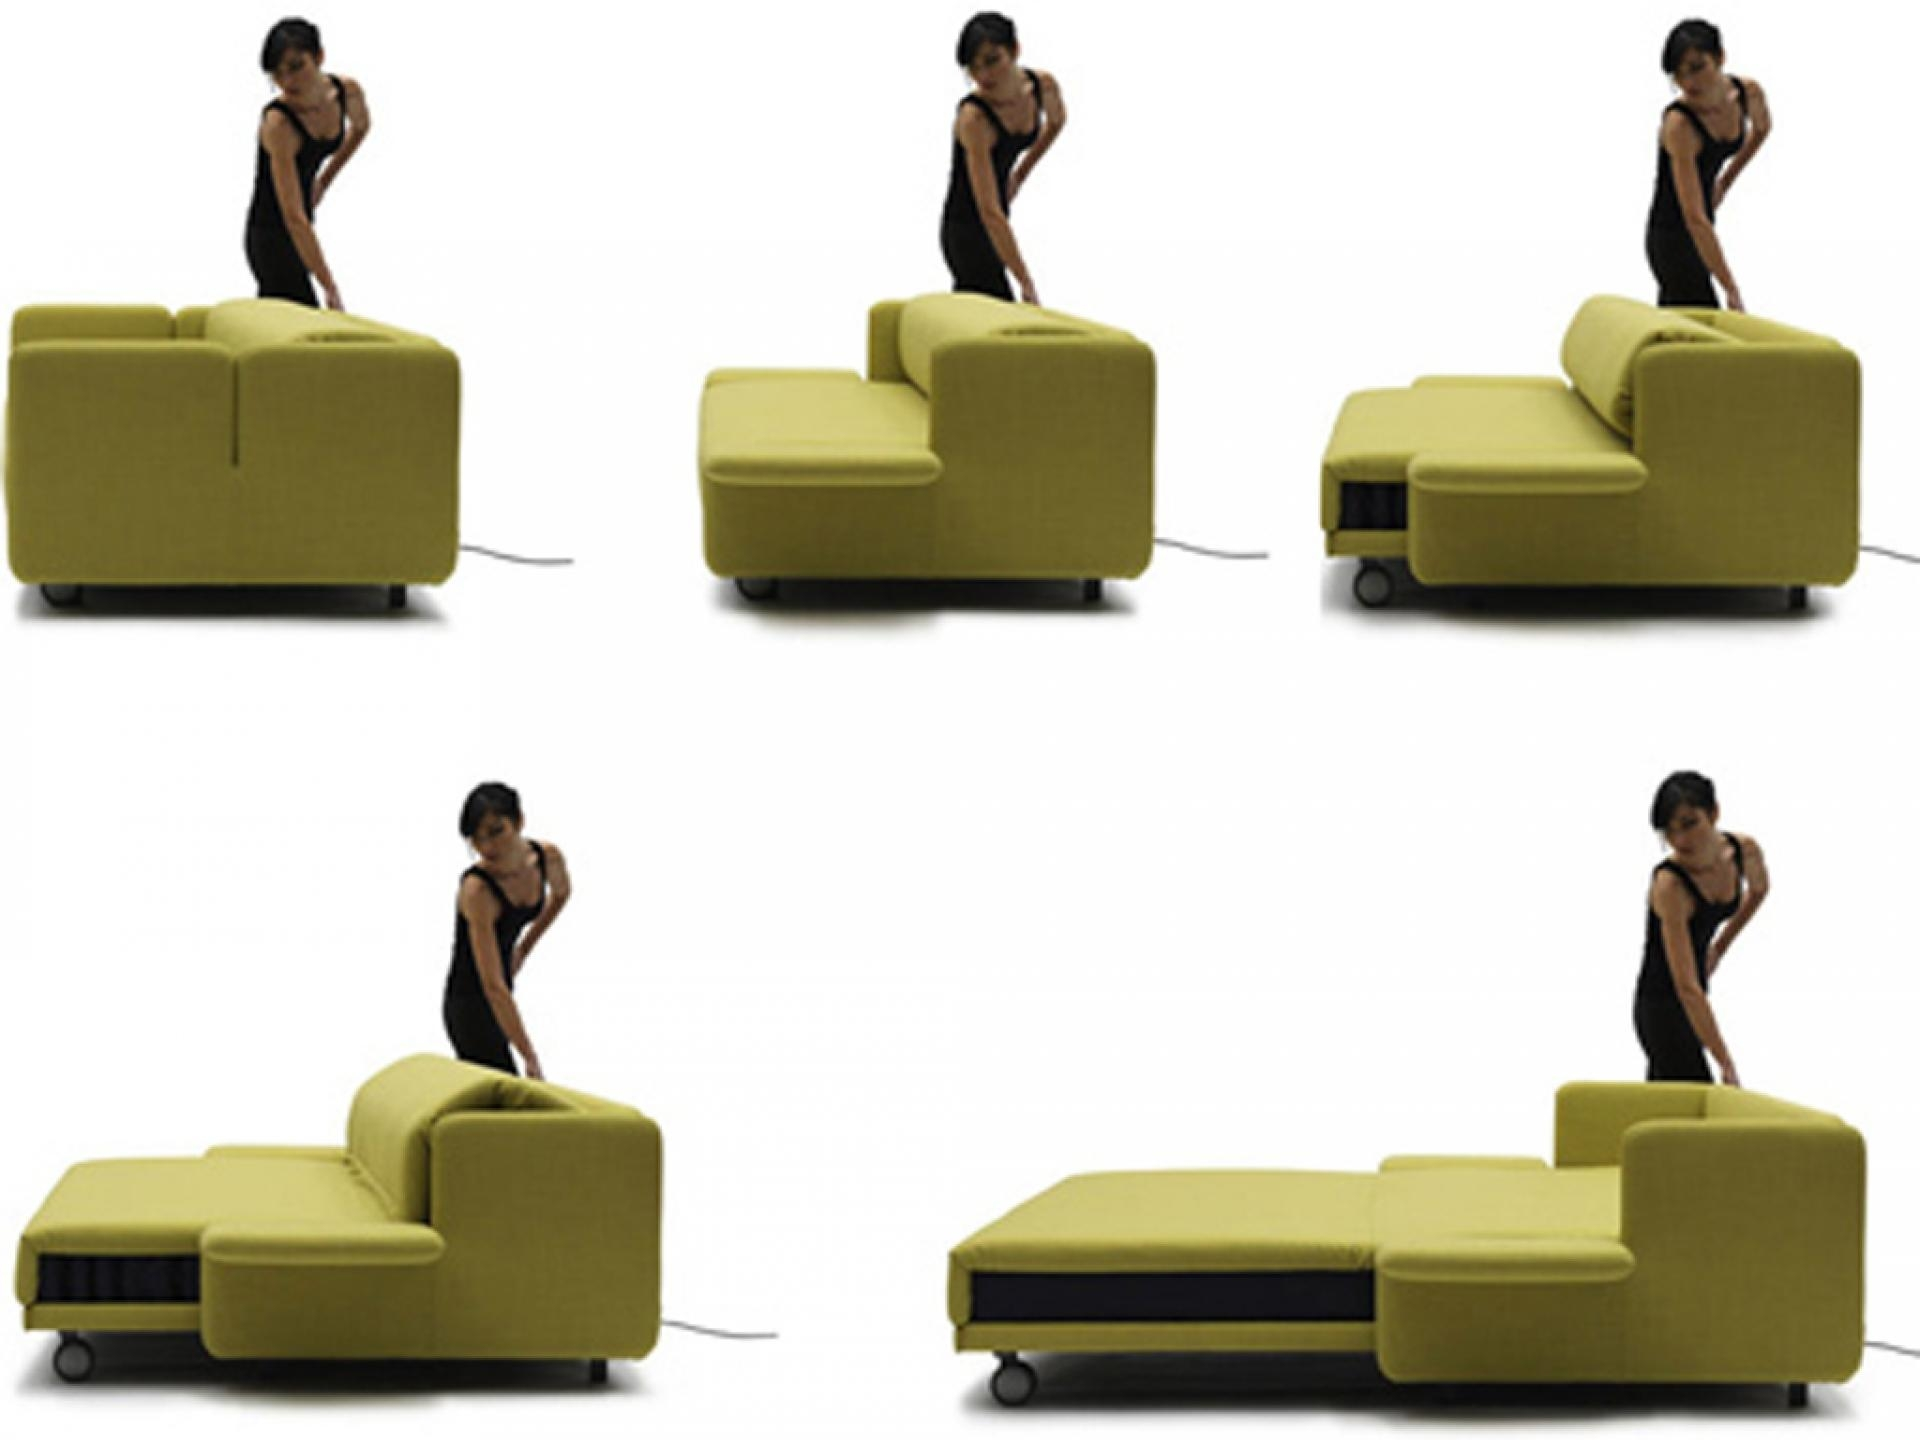 Small Scale Sofas Uk   Tehranmix Decoration Intended For Small Scale Sofas (Image 15 of 20)